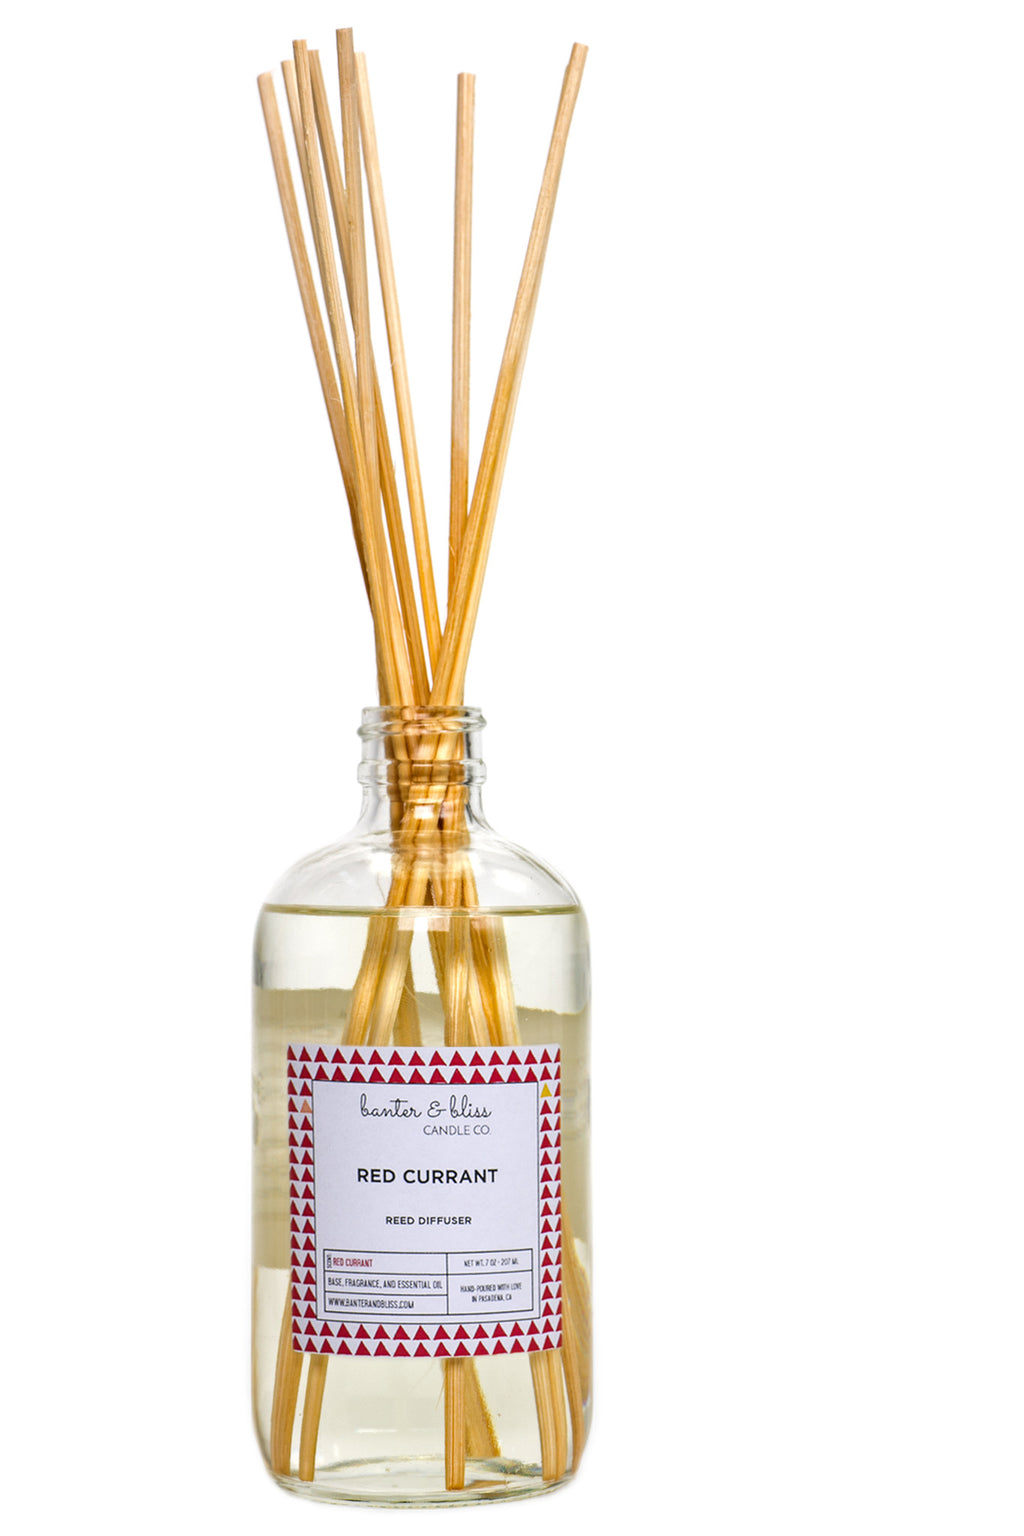 RED CURRANT. Reed Diffuser.